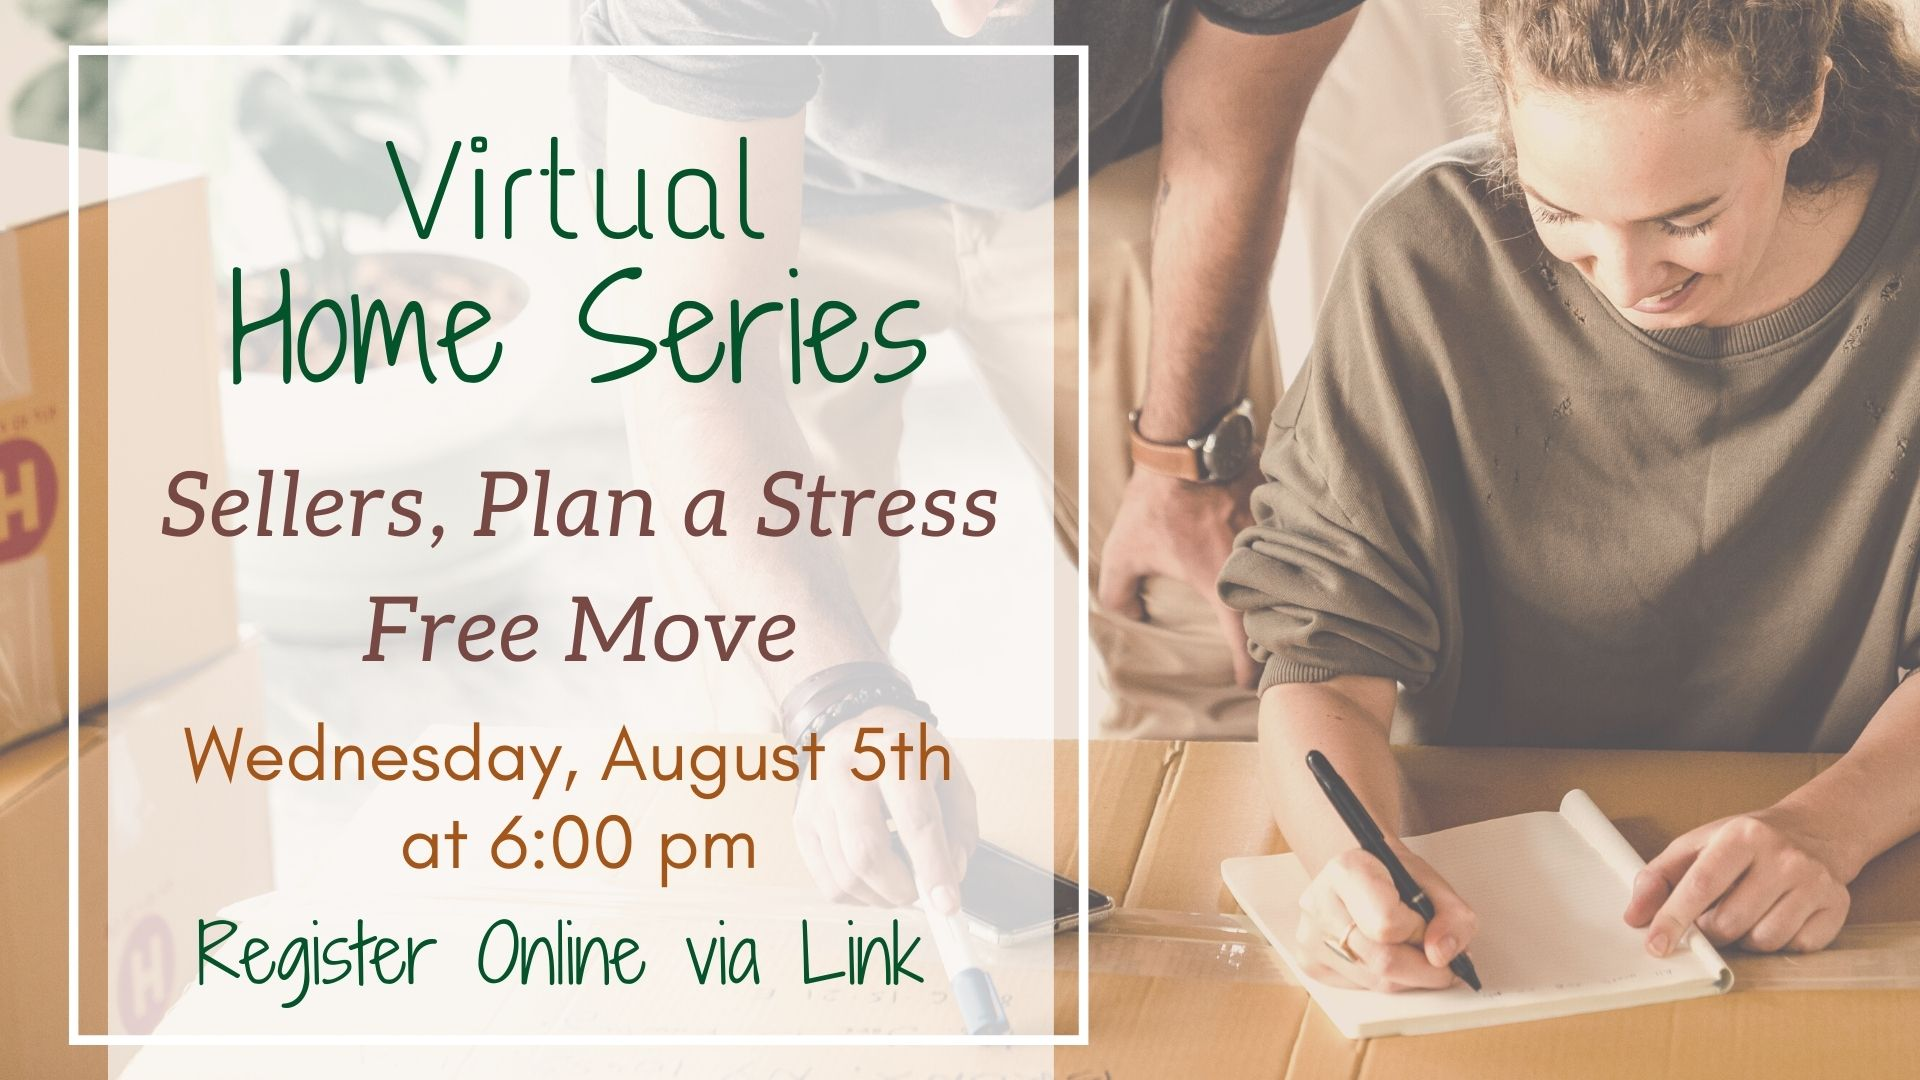 Virtual Home Series: Sellers, Plan a Stress Free Move!